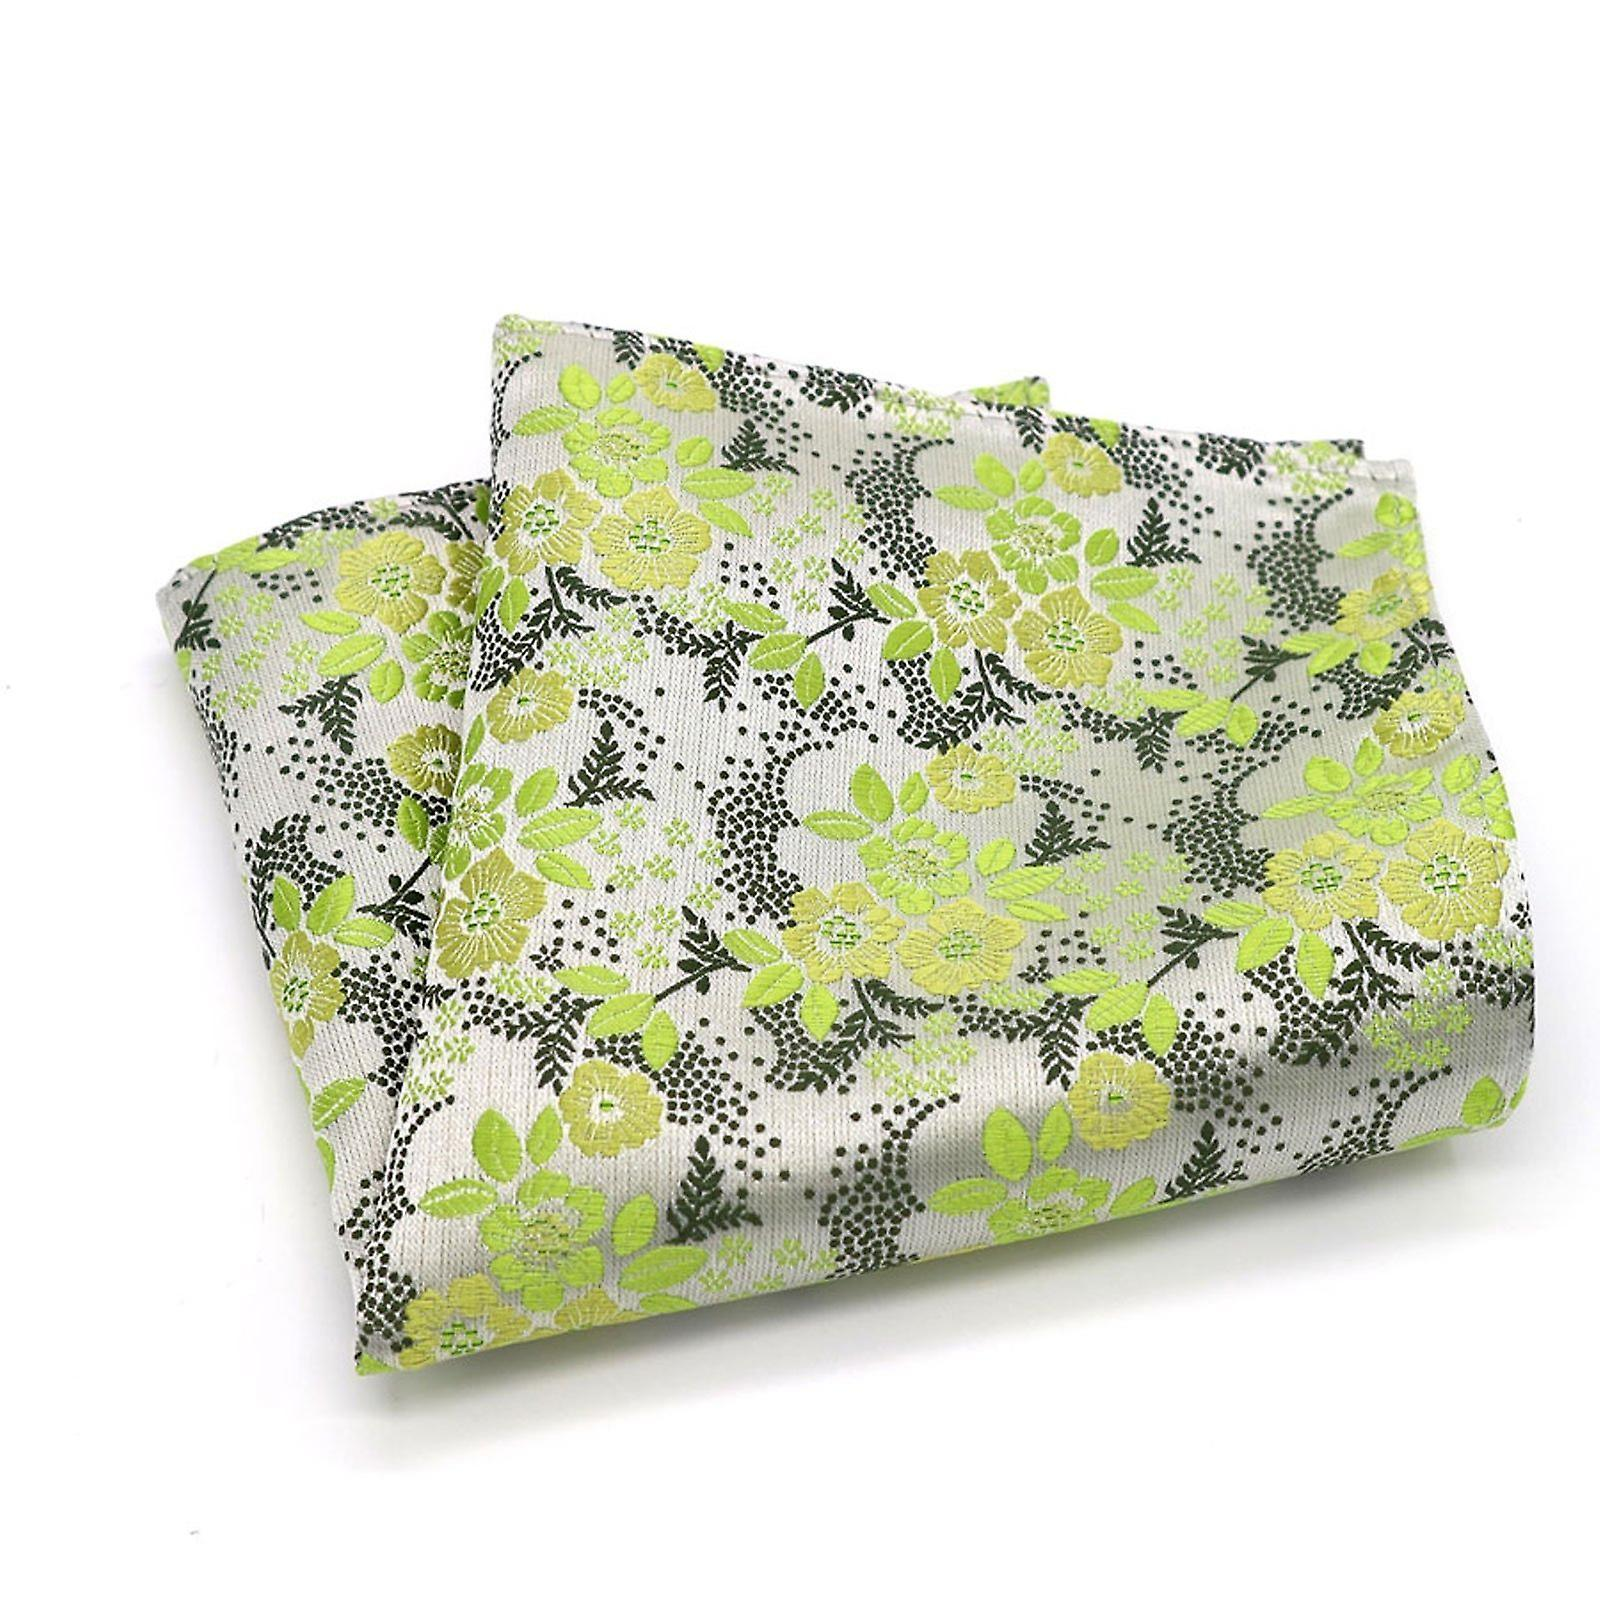 Light green & silver mixed wedding floral pocket square